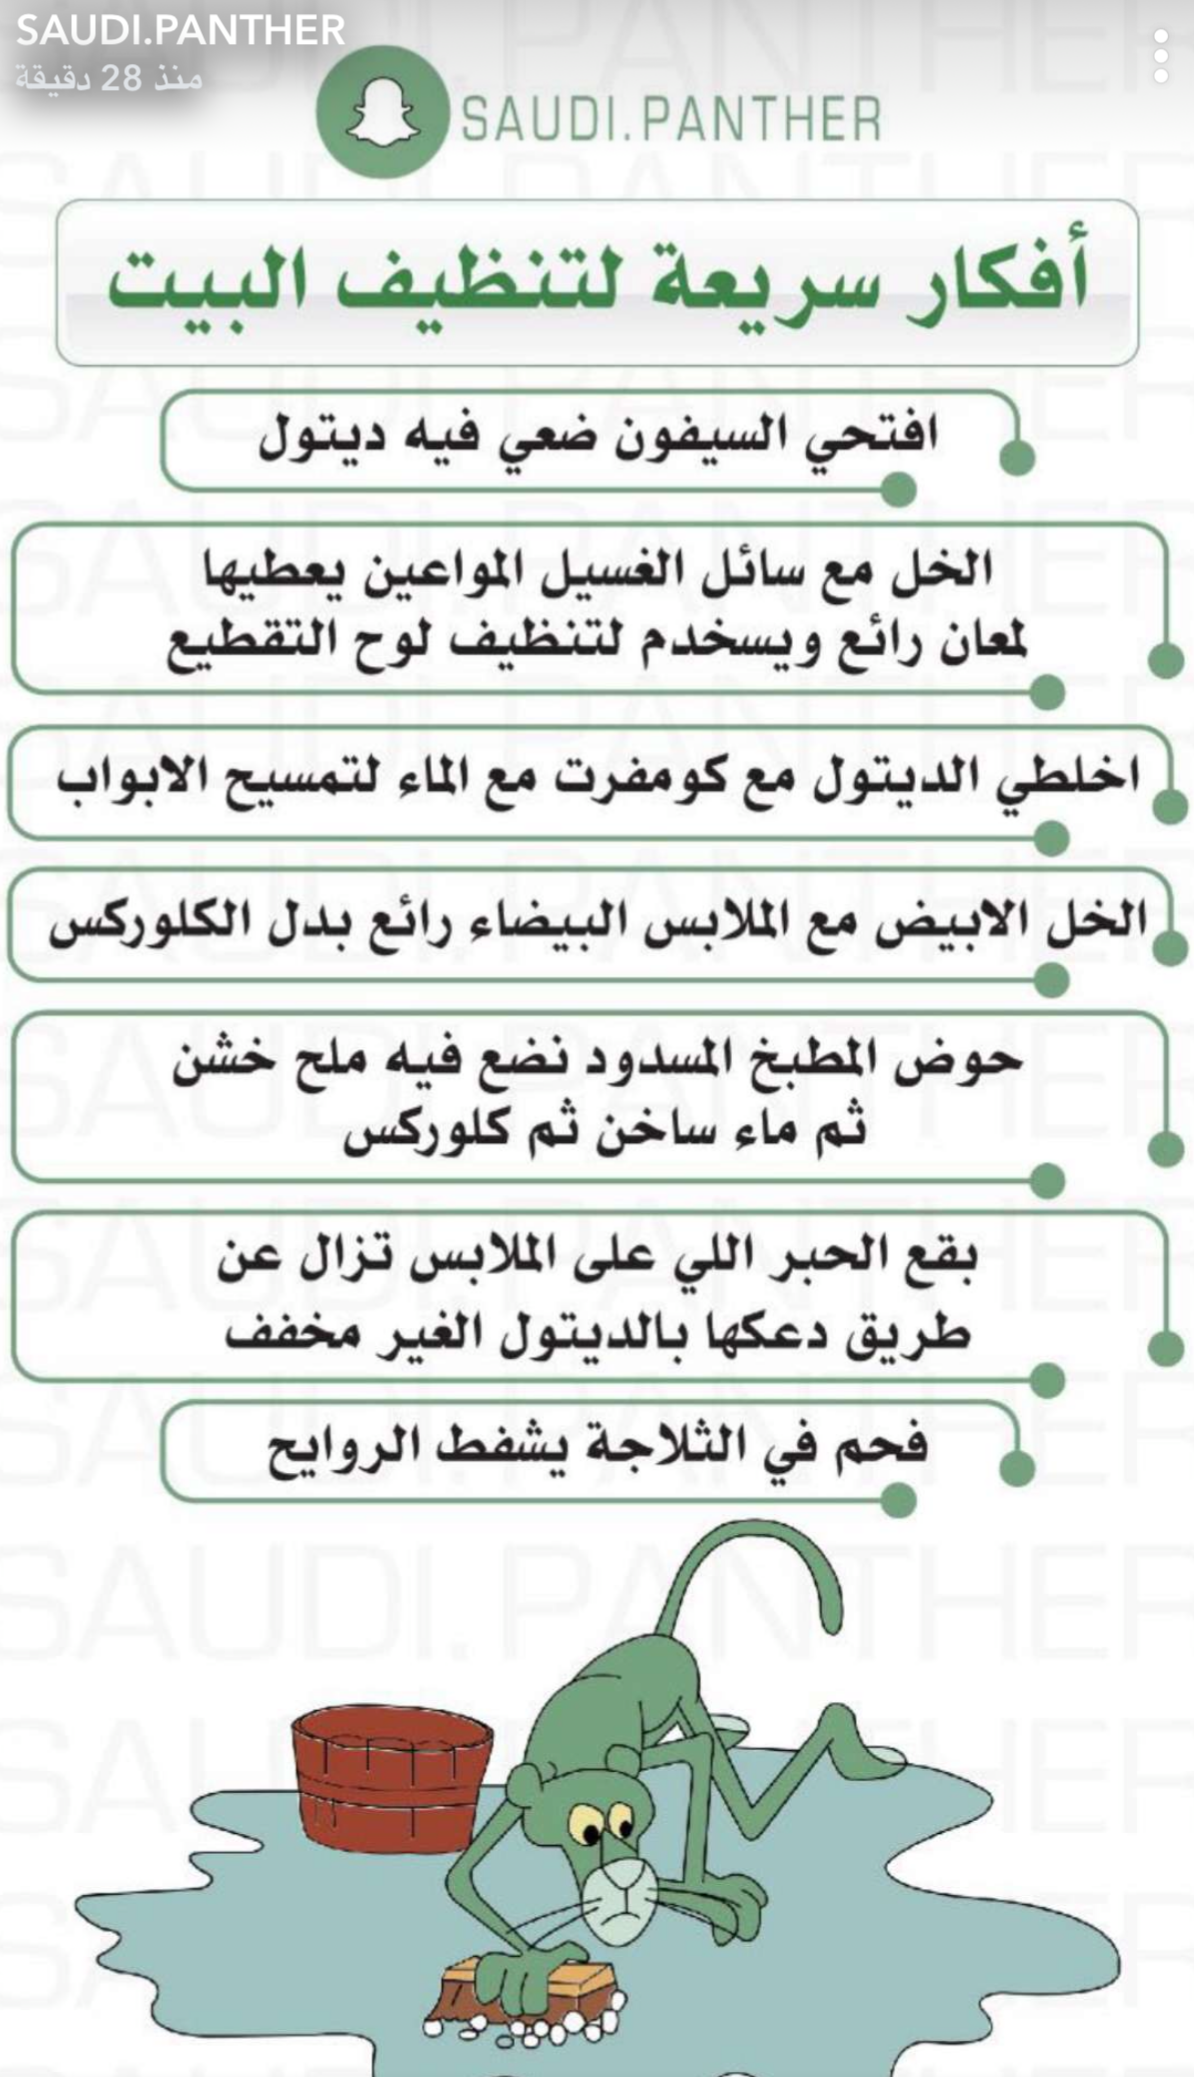 Pin By Heba Samir On تنظيف In 2020 House Cleaning Checklist Clean House Diy Home Cleaning